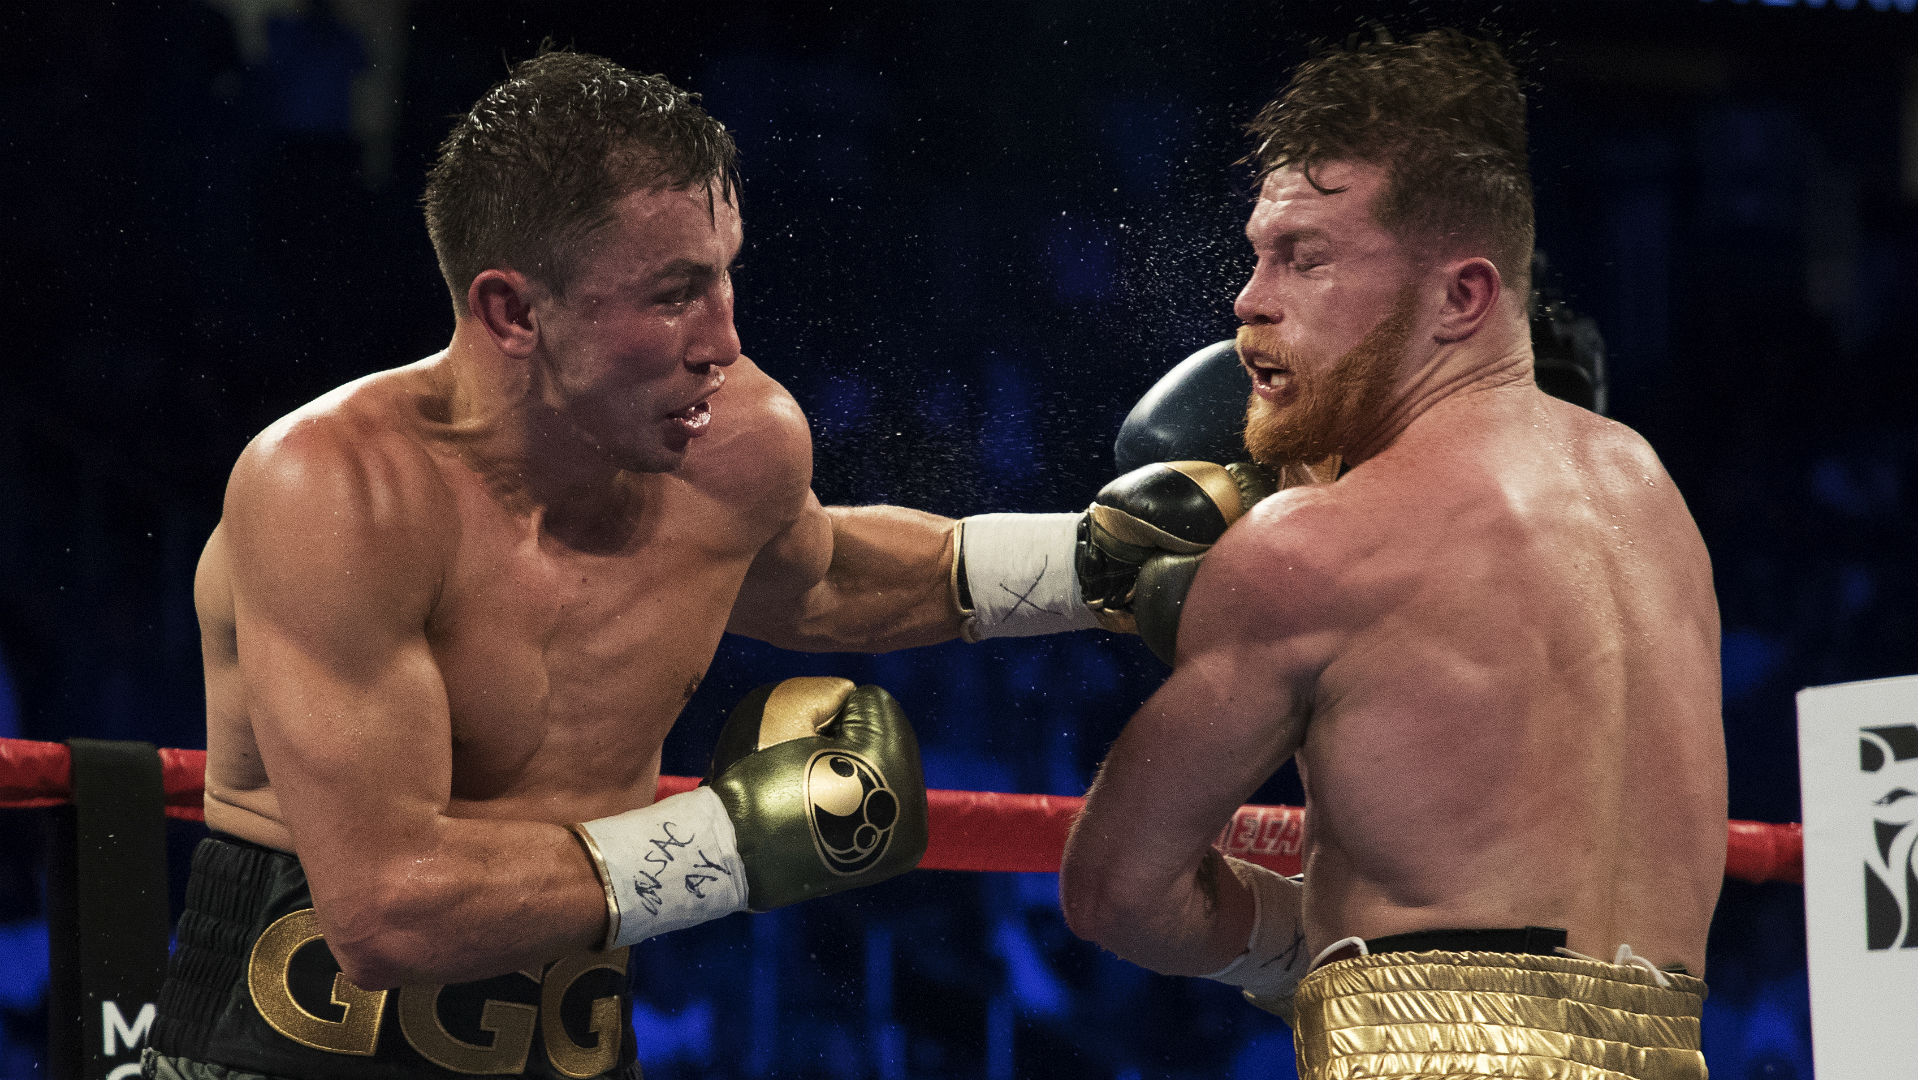 MMA world reacts to Canelo Alvarez-Gennady Golovkin 2